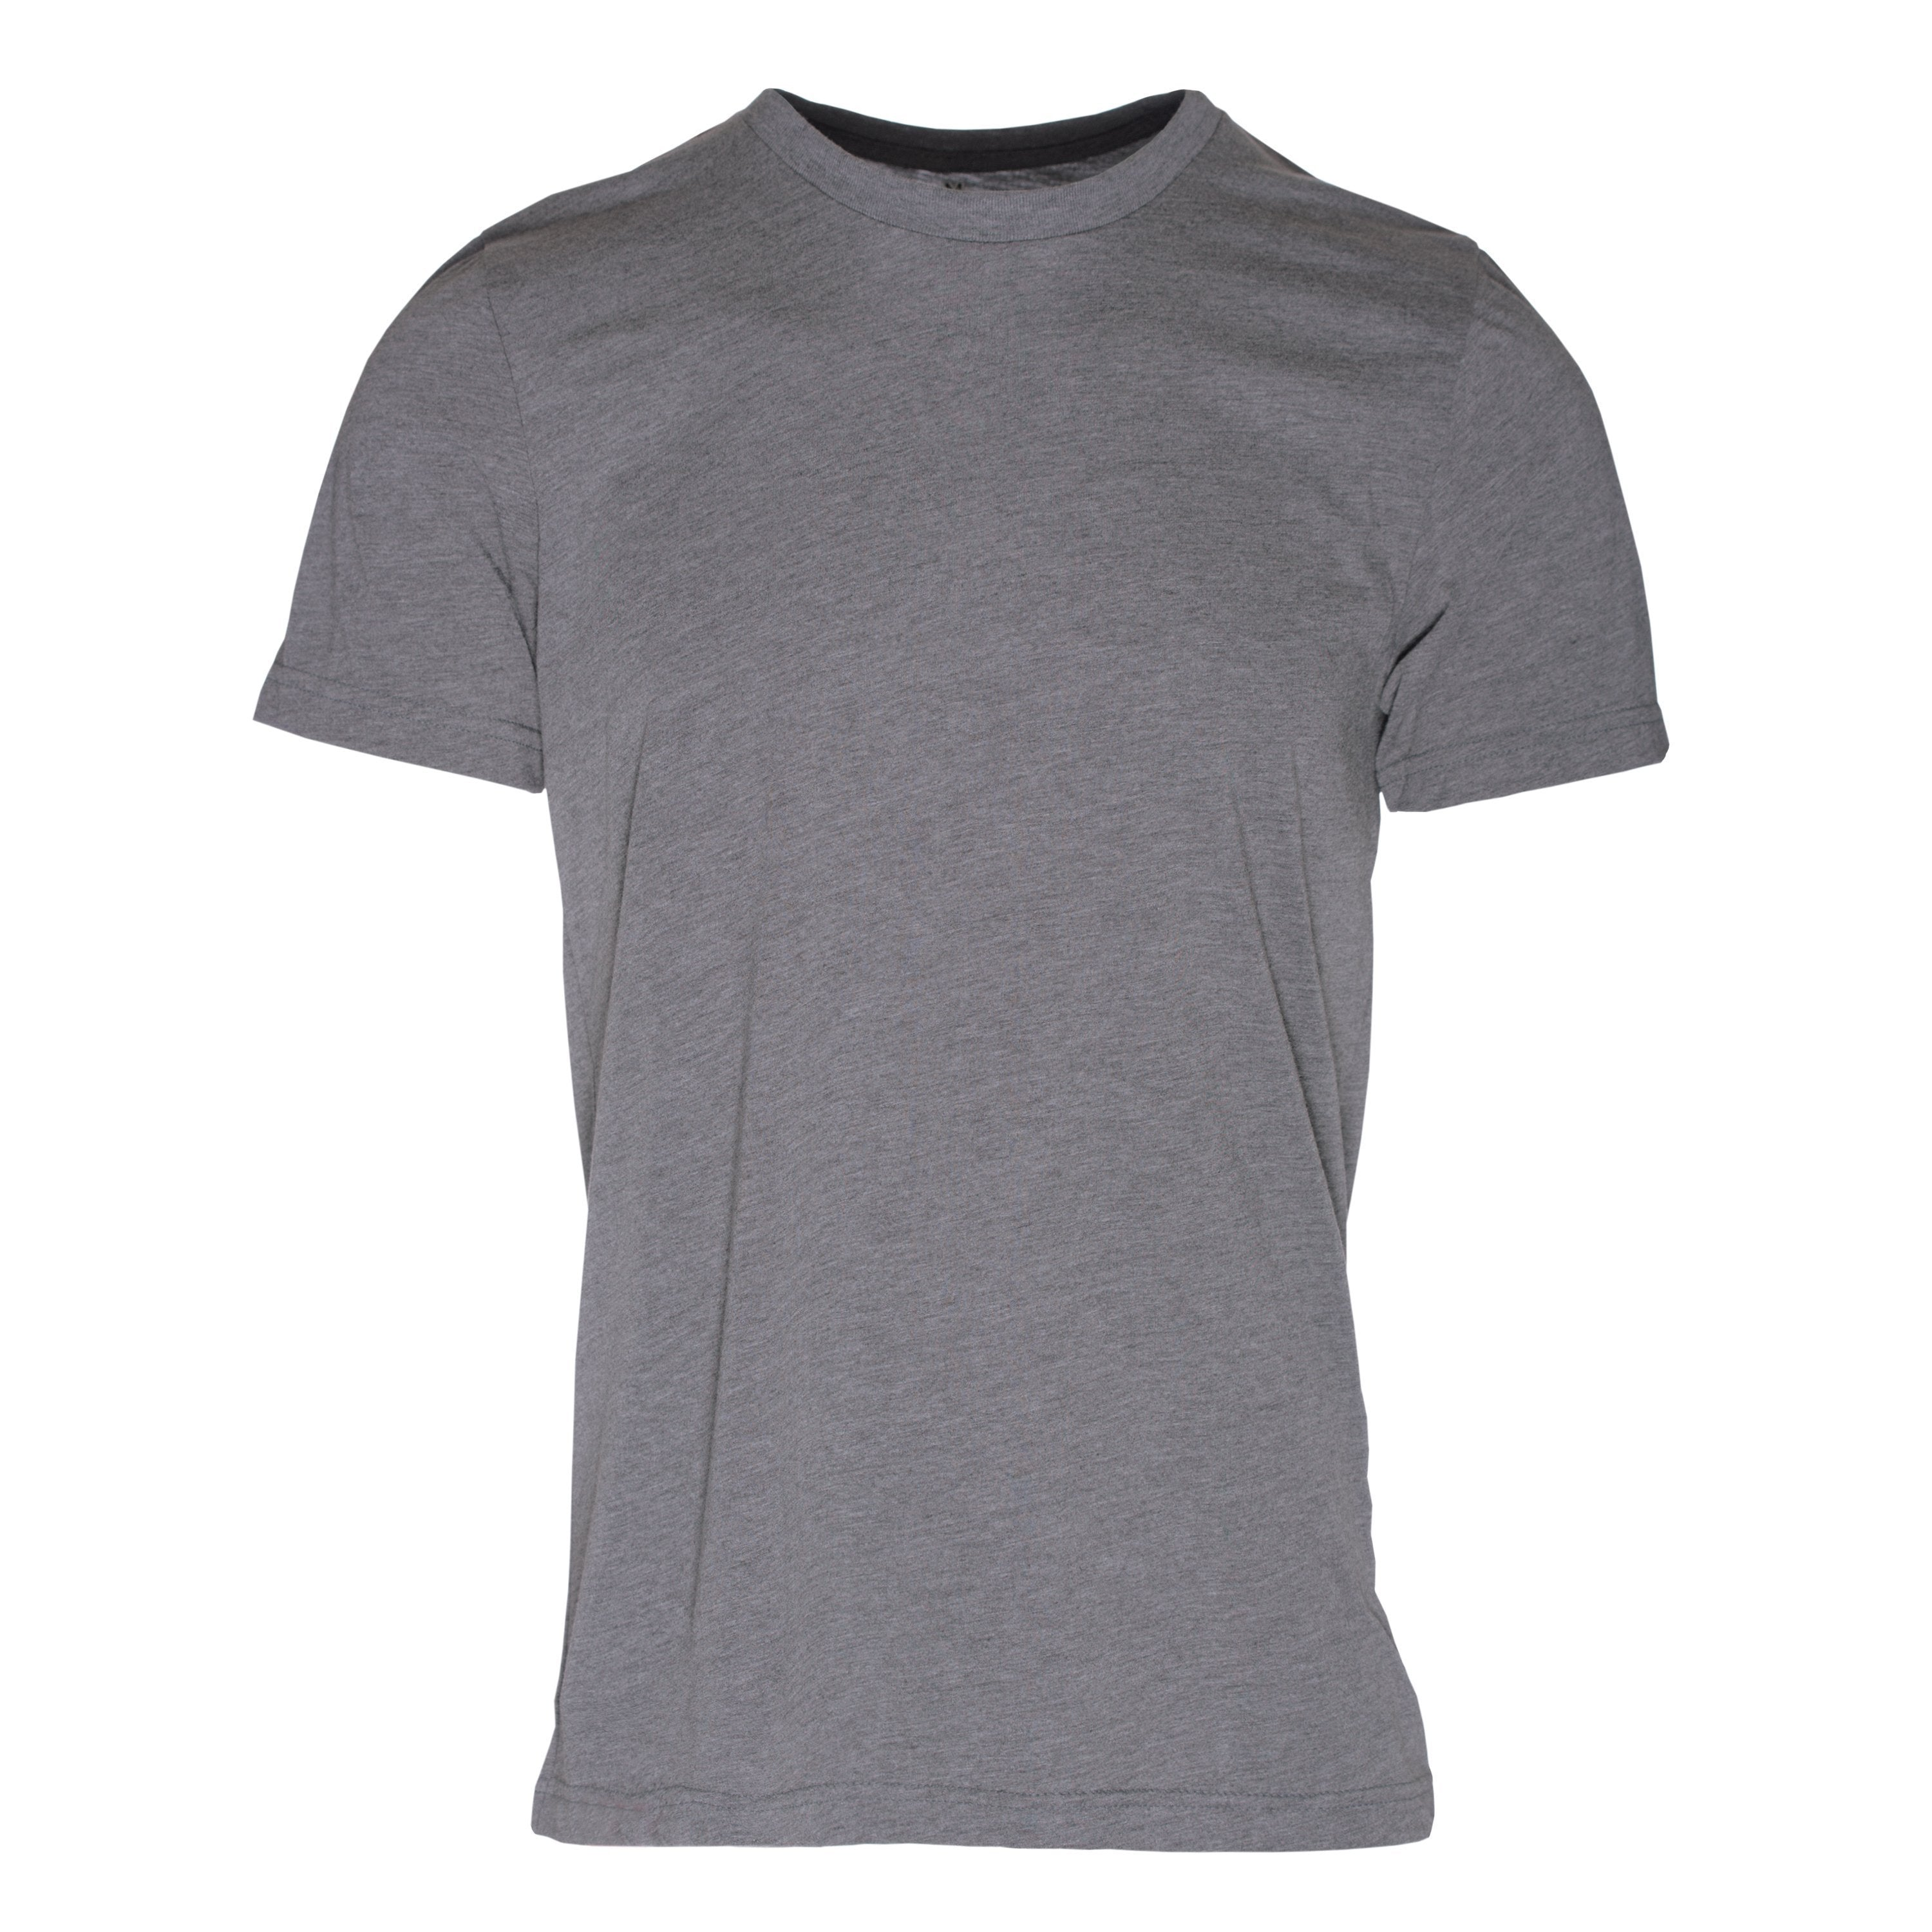 RM101GR Eco REPREVE® Recycled Triblend Crew T-Shirt - Grey